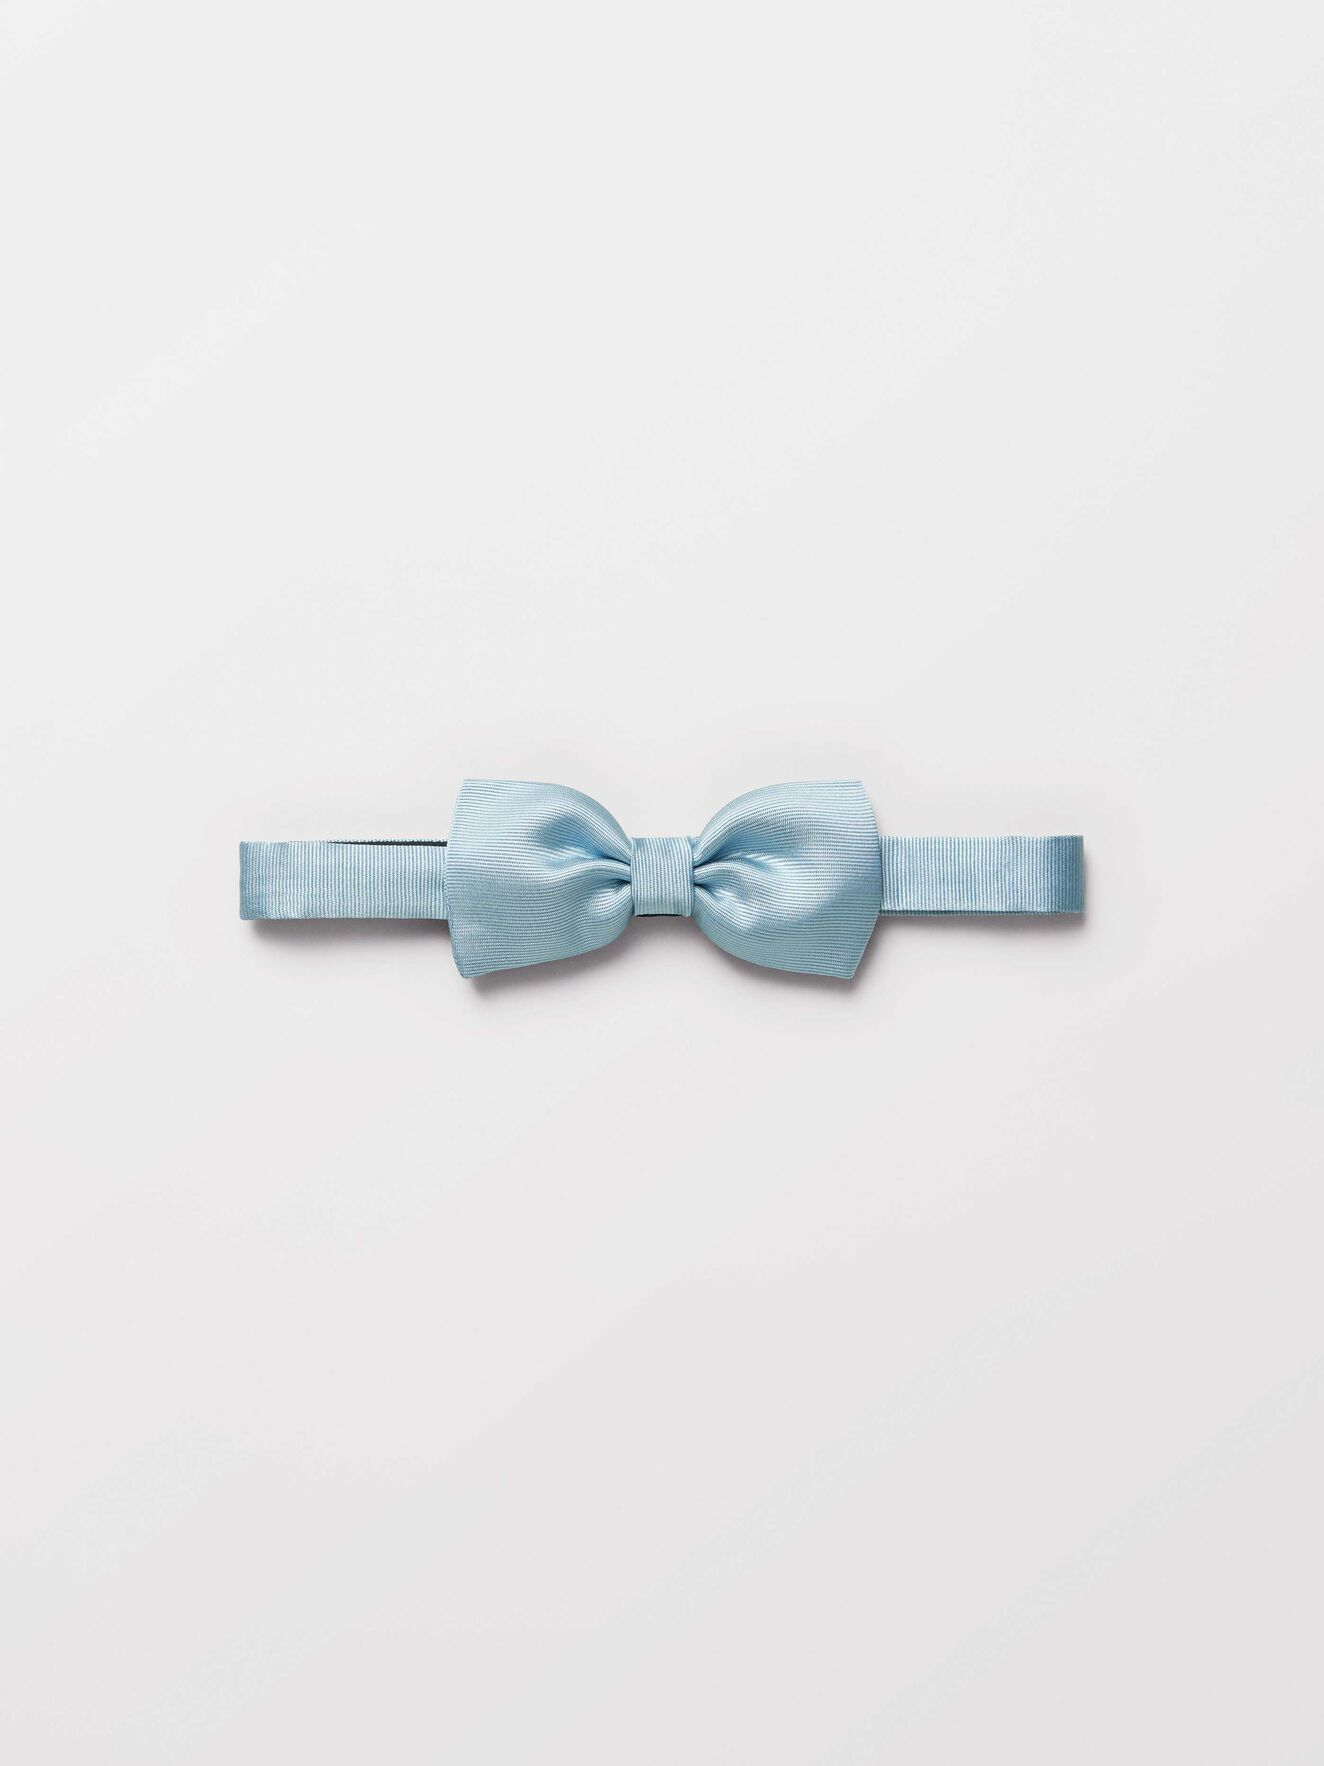 Bardel Pr Bowtie in Airy Blue from Tiger of Sweden